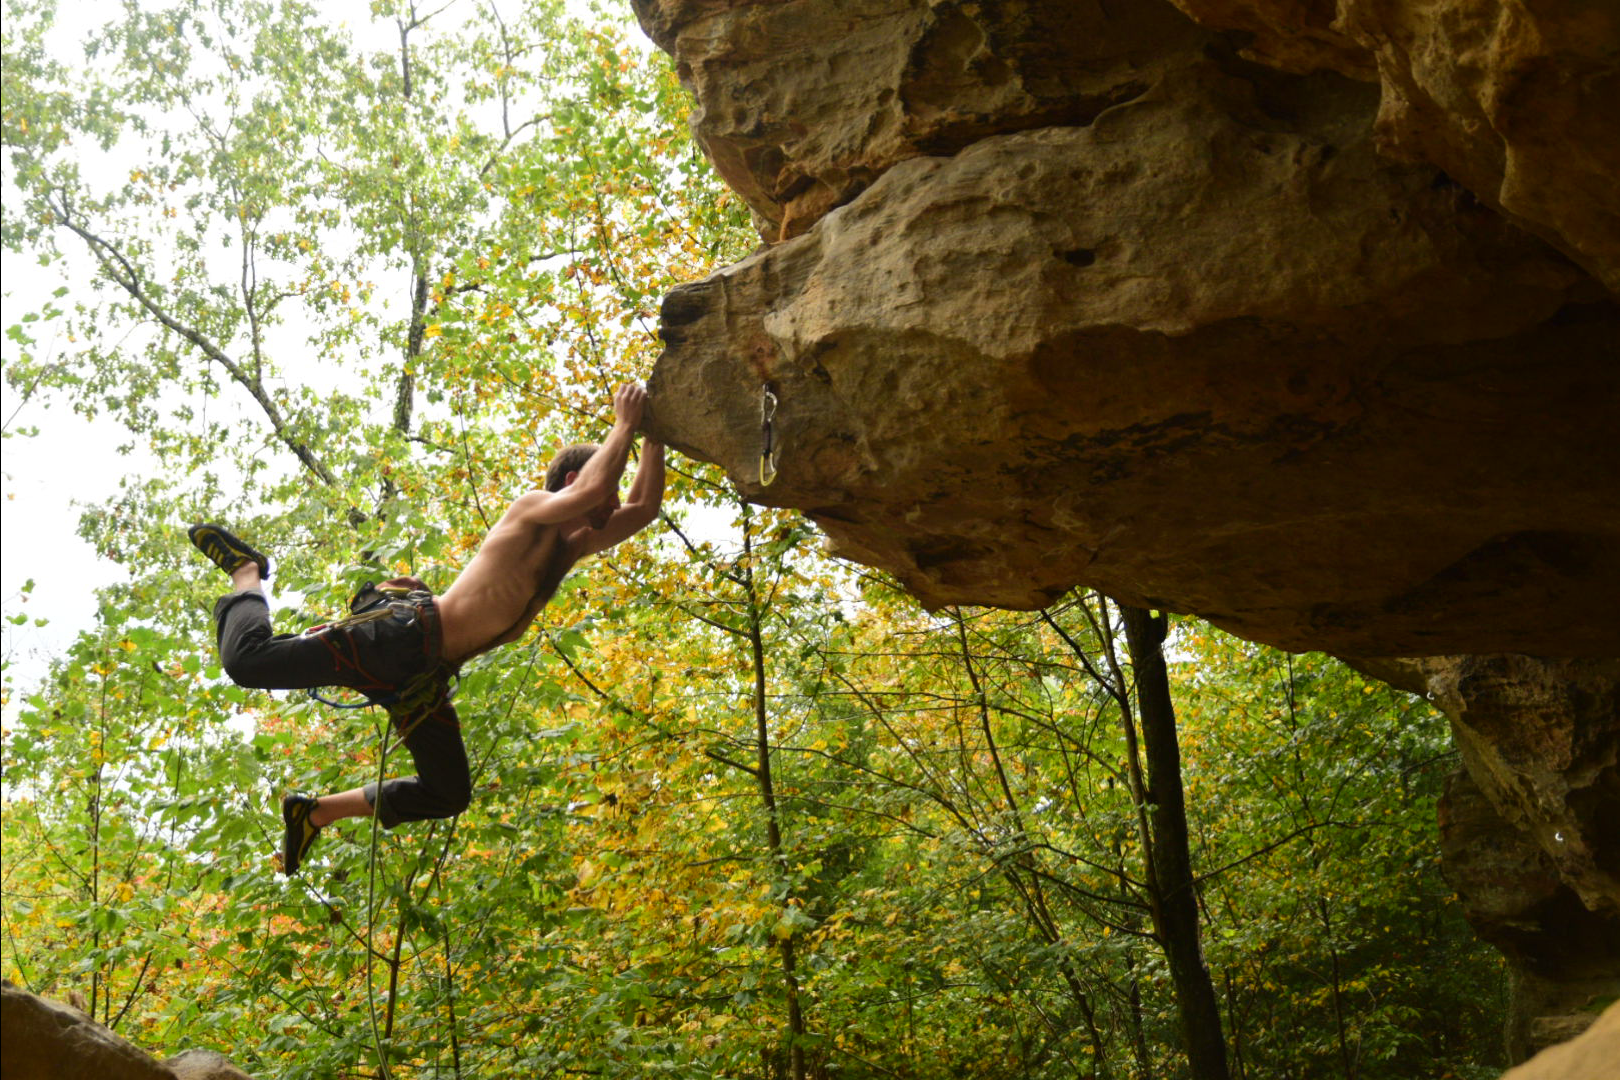 Amir Fishman making a hard move in the Red River Gorge, Kentucky